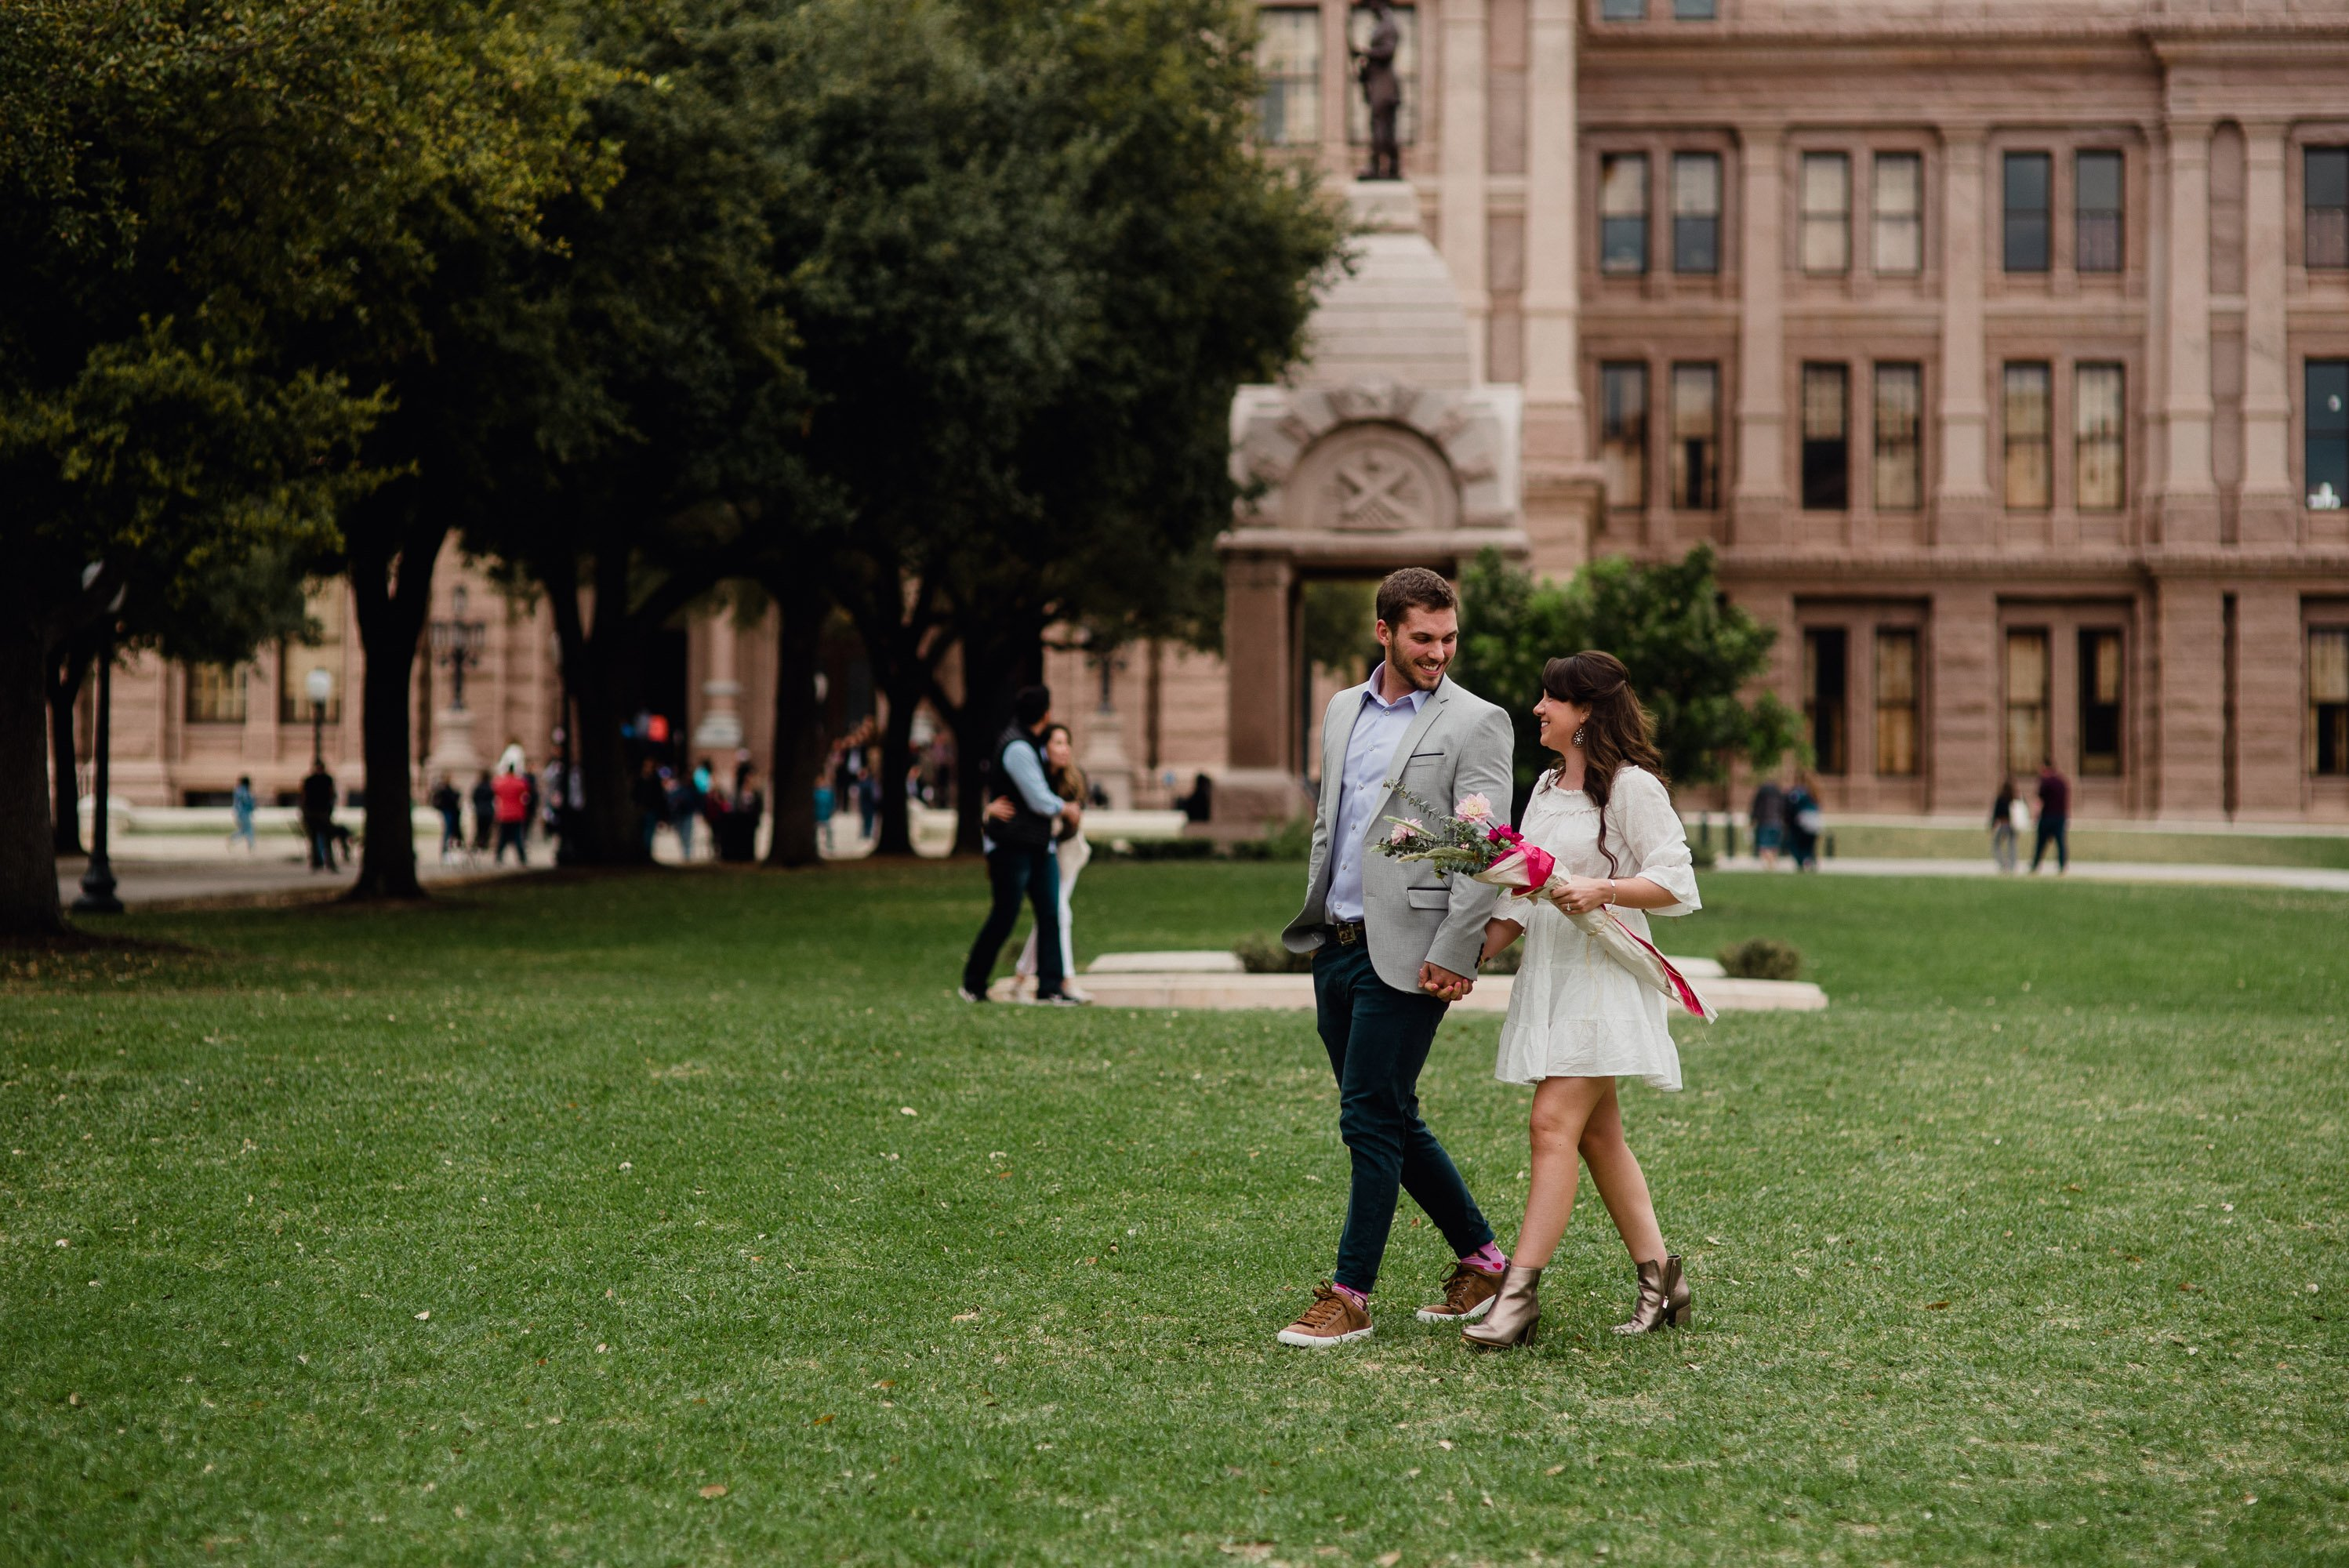 austin proposal photographer, portraits on the capitol lawn in austin texas, where to propose in austin, austin proposal photos